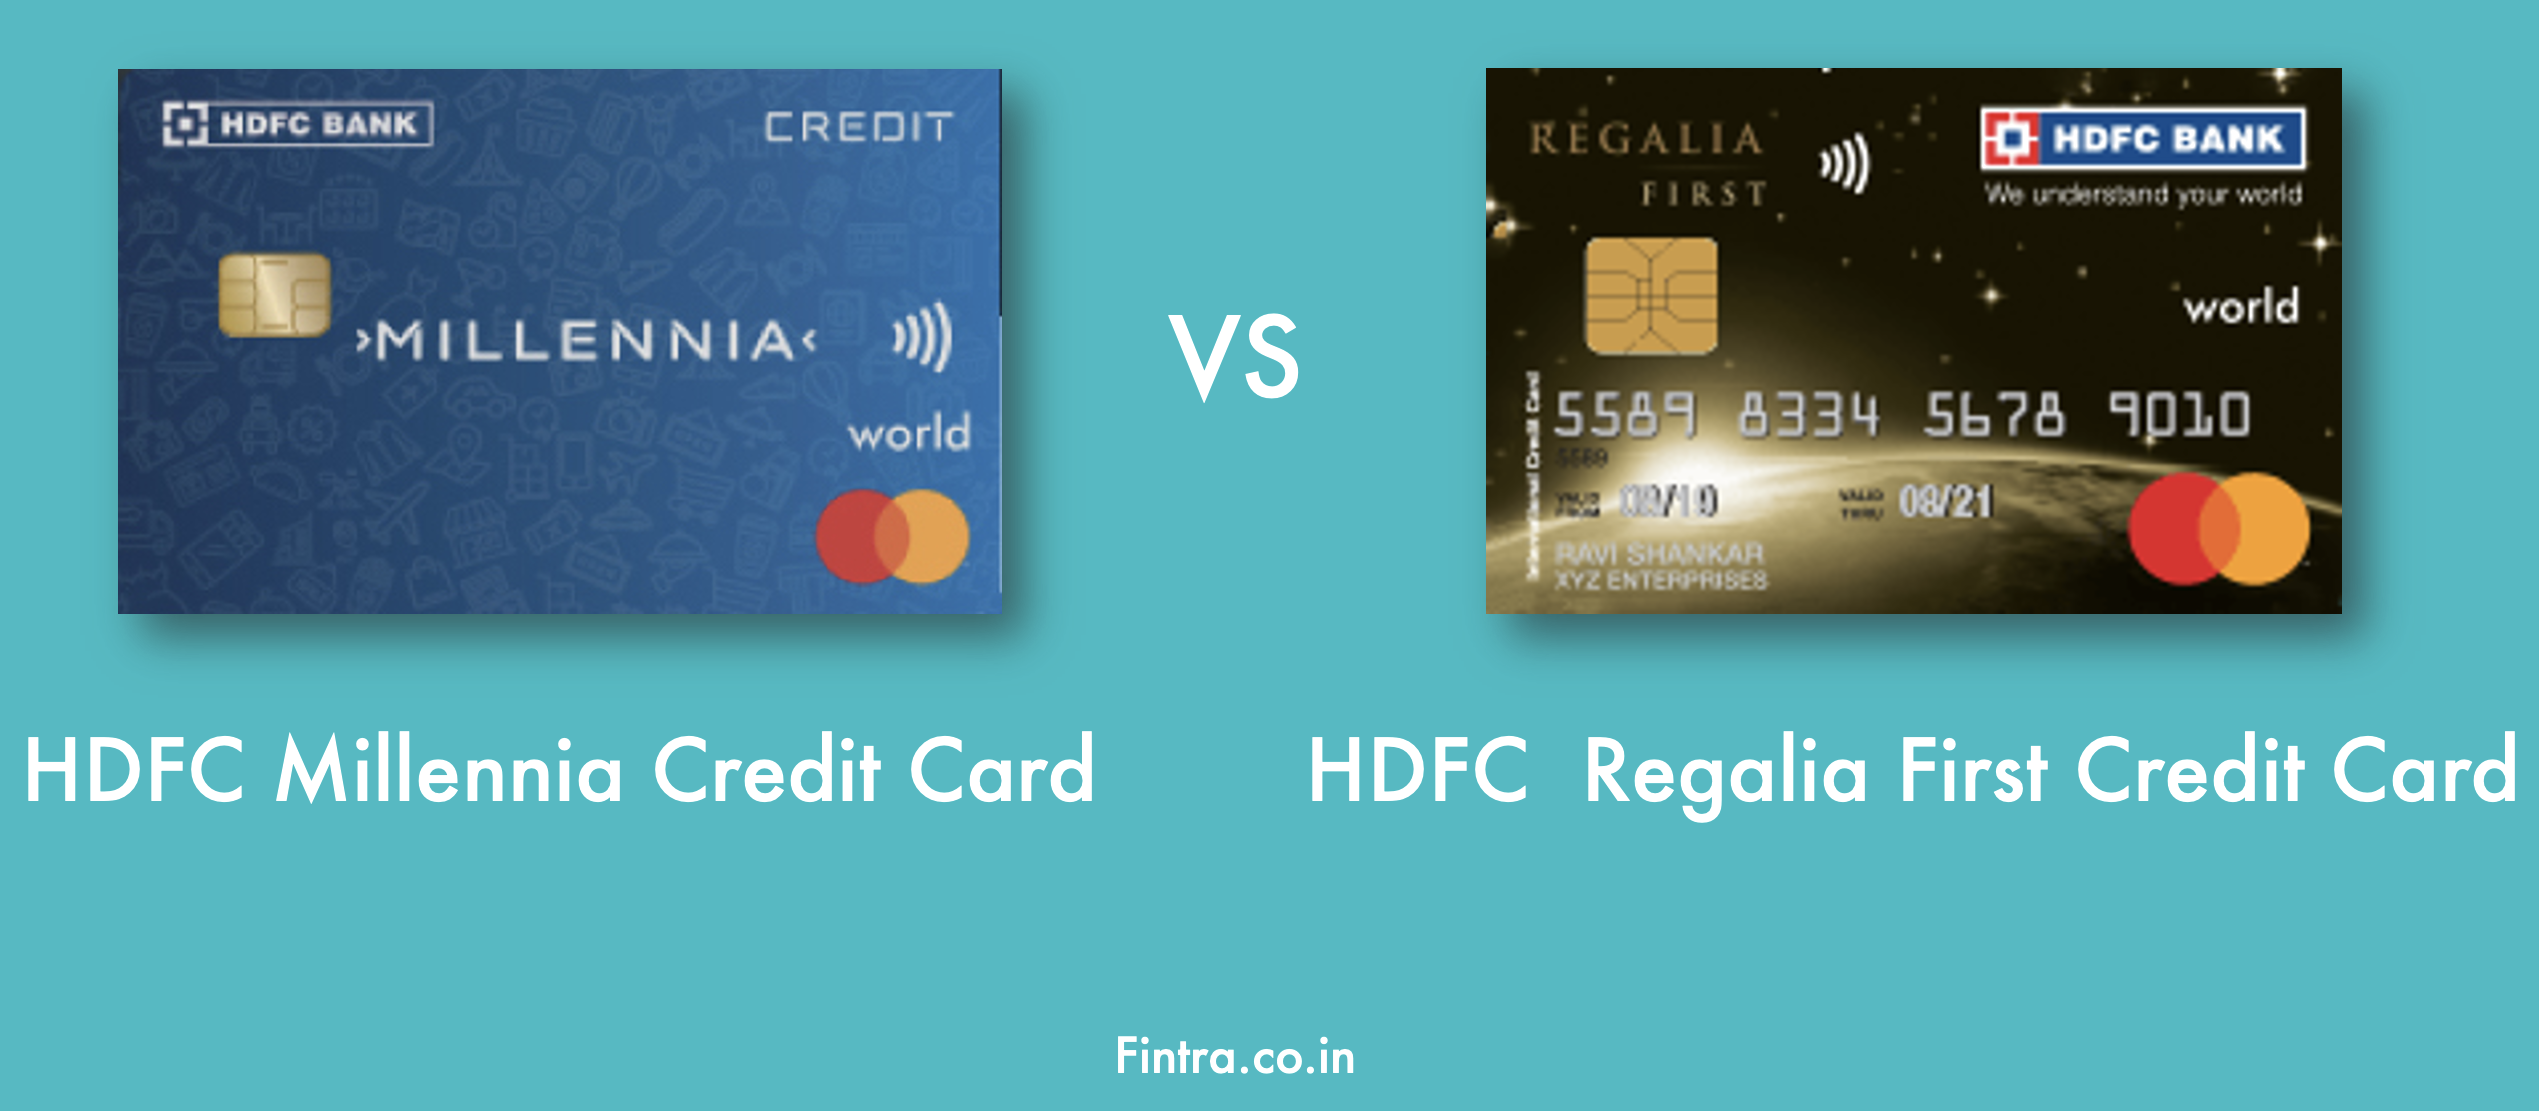 Compare the Top Two Credit Cards of 2021- HDFC Millennia Credit Card VS Regalia First Credit Card